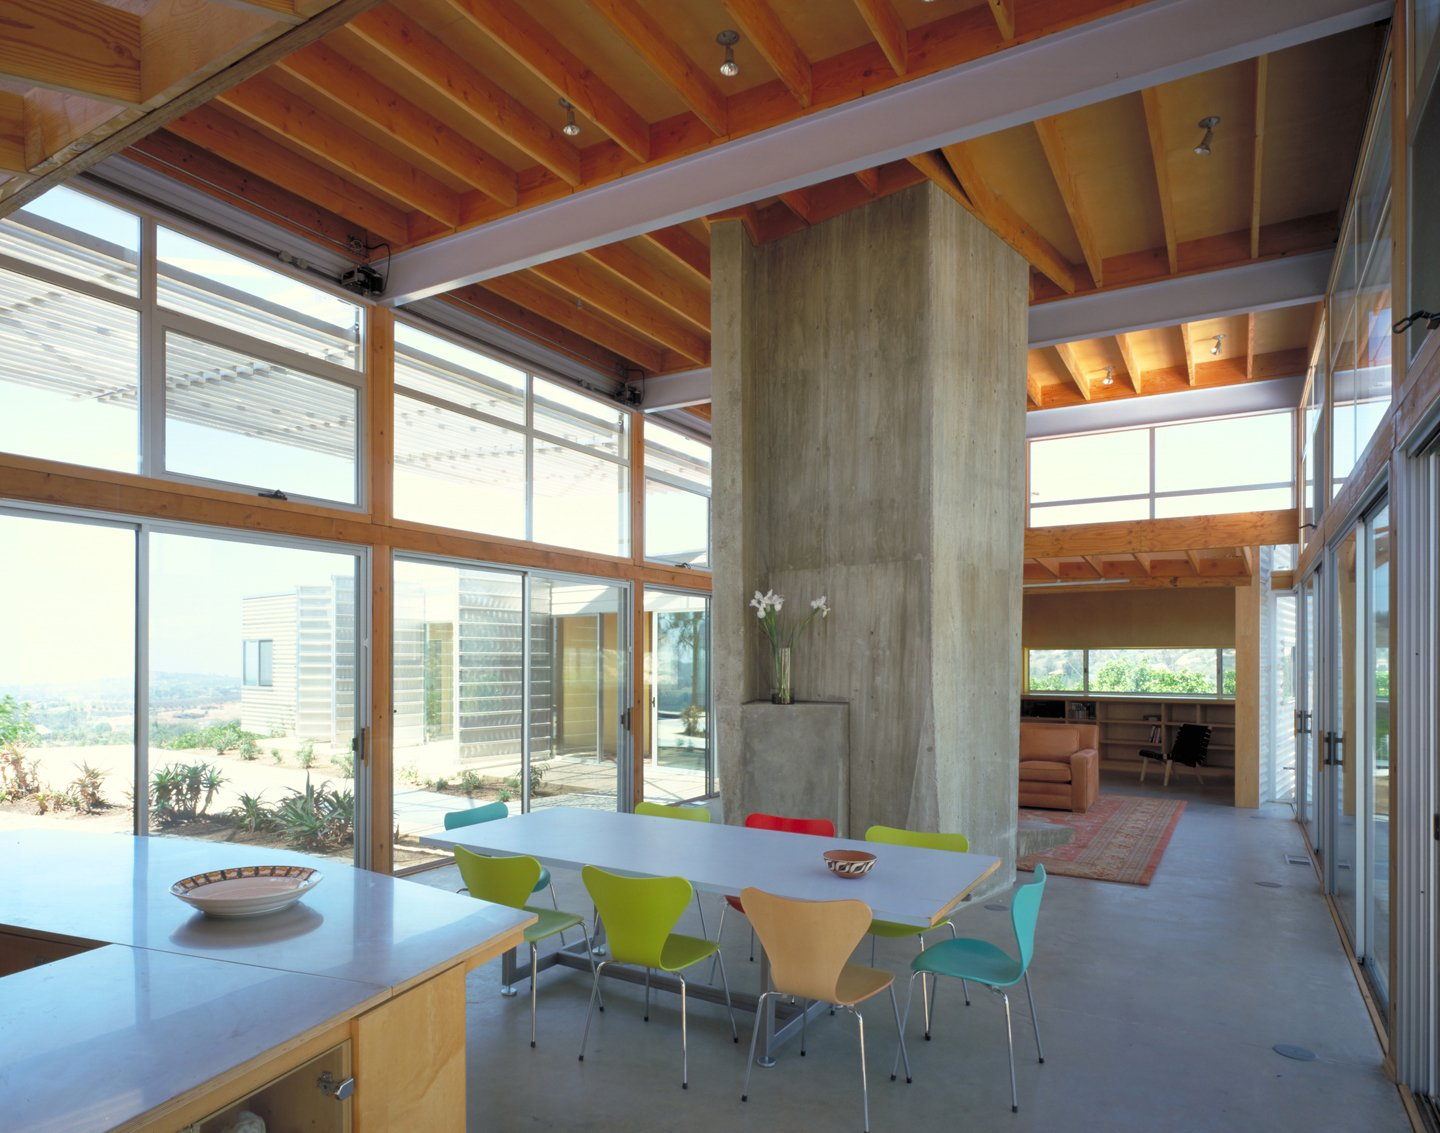 #interior #inside #indoor #diningroom #kitchen #concrete #color #table #chair #eco #green #sustainable #ValleyCenter #California #KevinDalyArchitects  Valley Center House